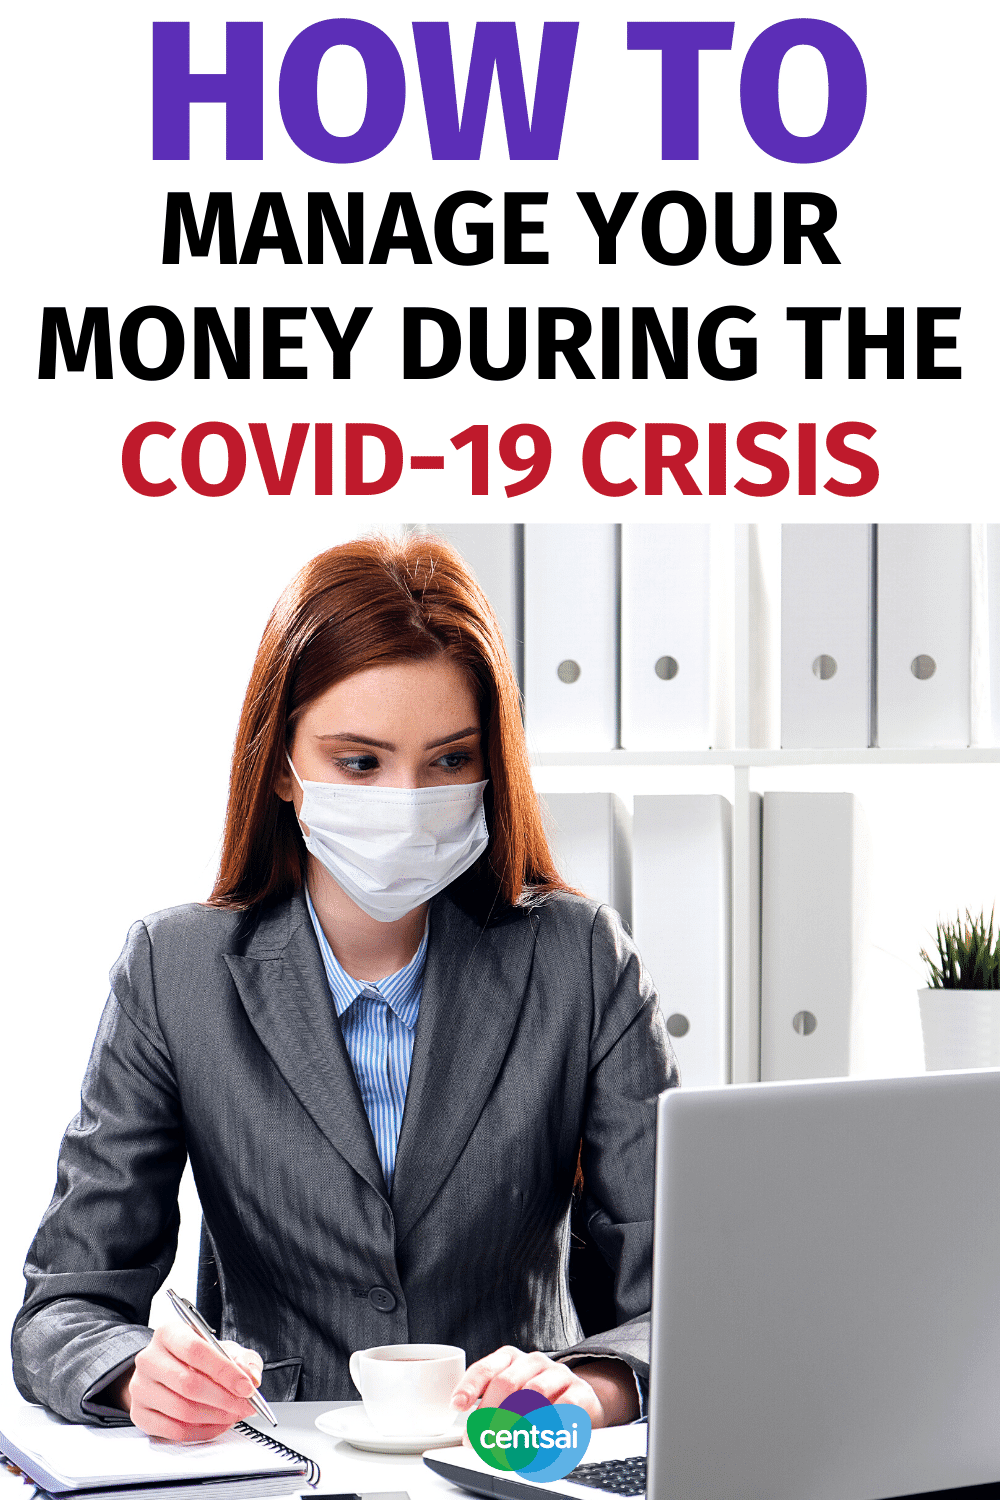 How to Manage Your Money during the COVID-19 Crisis